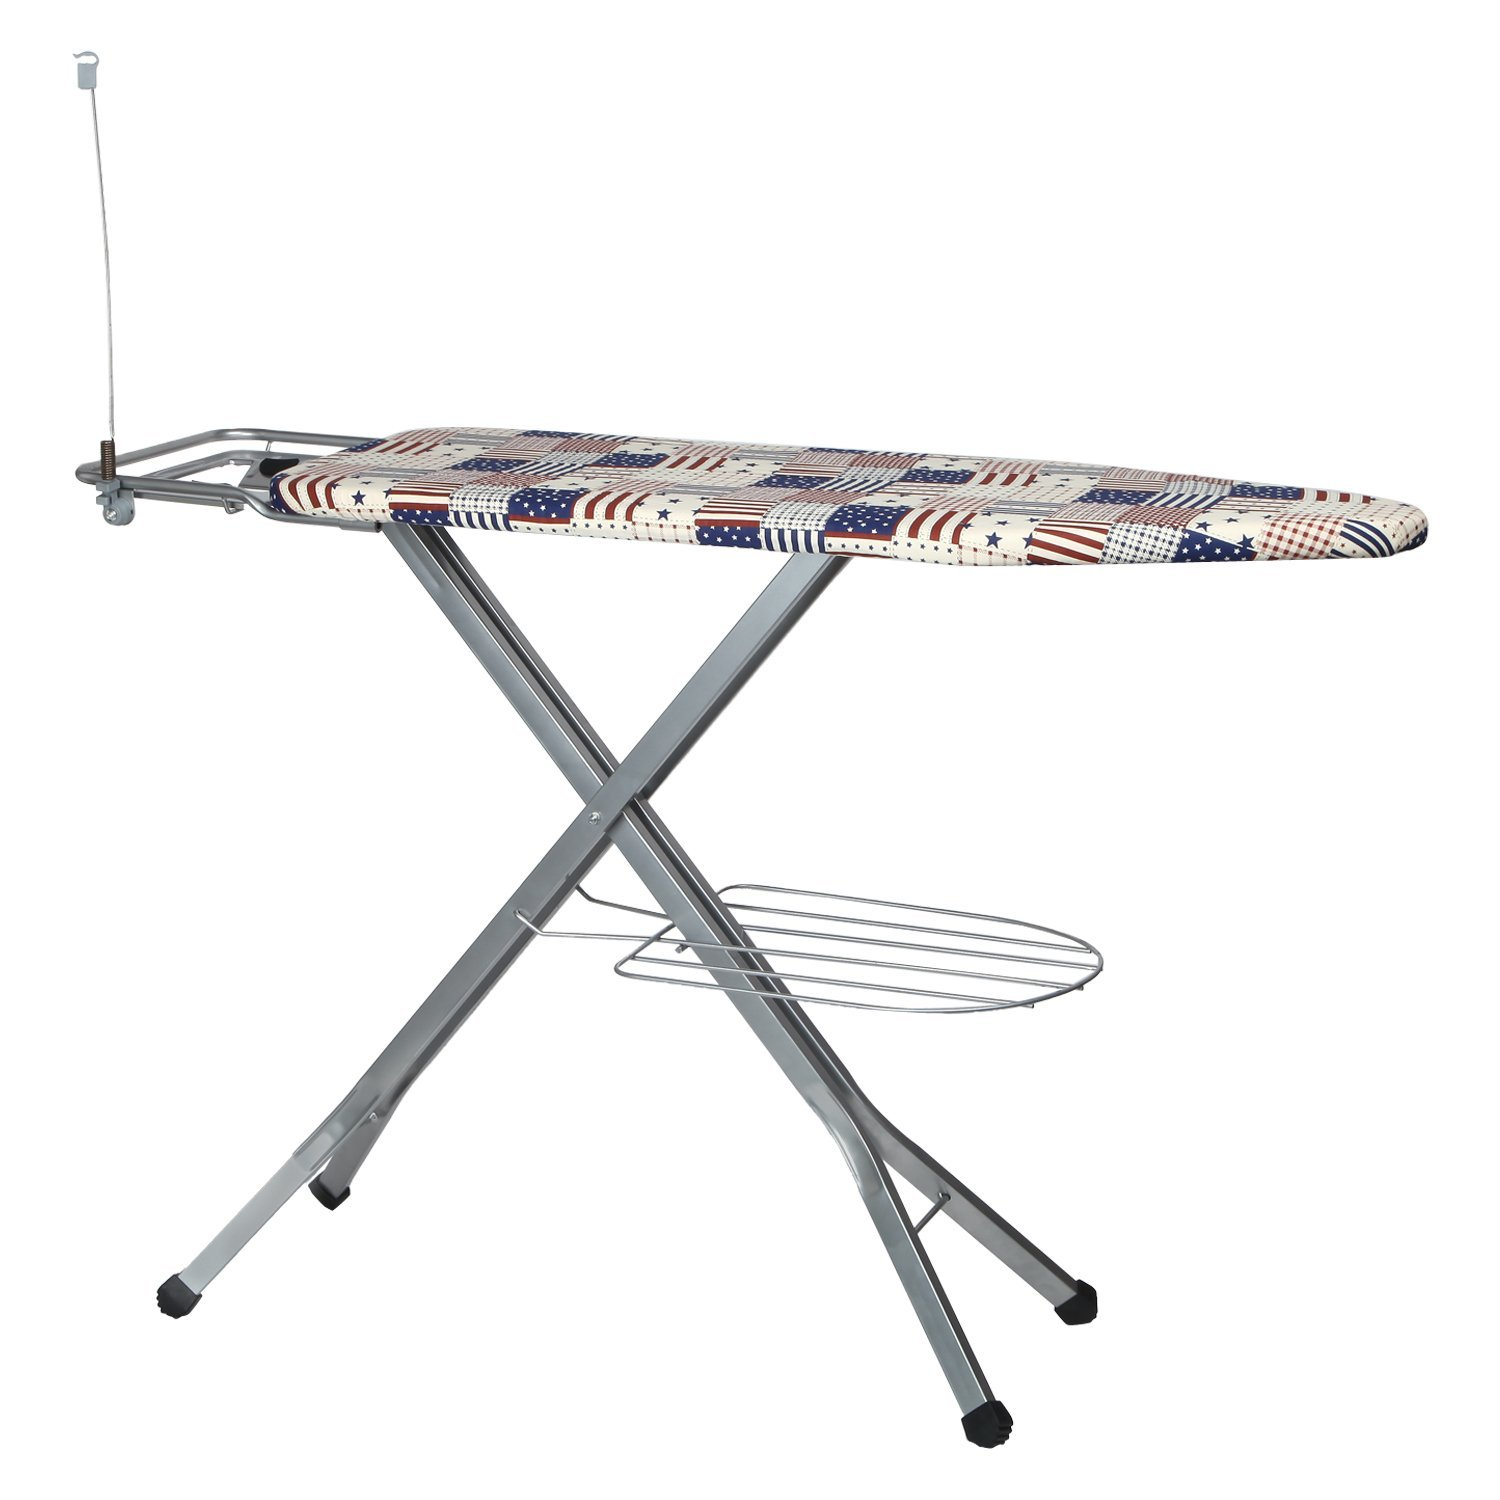 Paffy Folding Ironing Board With Multi-Function